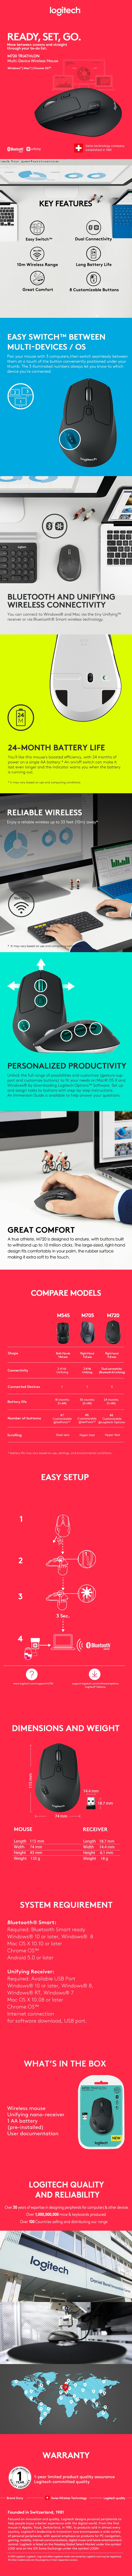 Logitech M720 Multi Device Bluetooth and Wireless Mouse with Logitech Flow,  Gesture Control and Wireless File Transfer #LogitechC&PGSSPromo2019